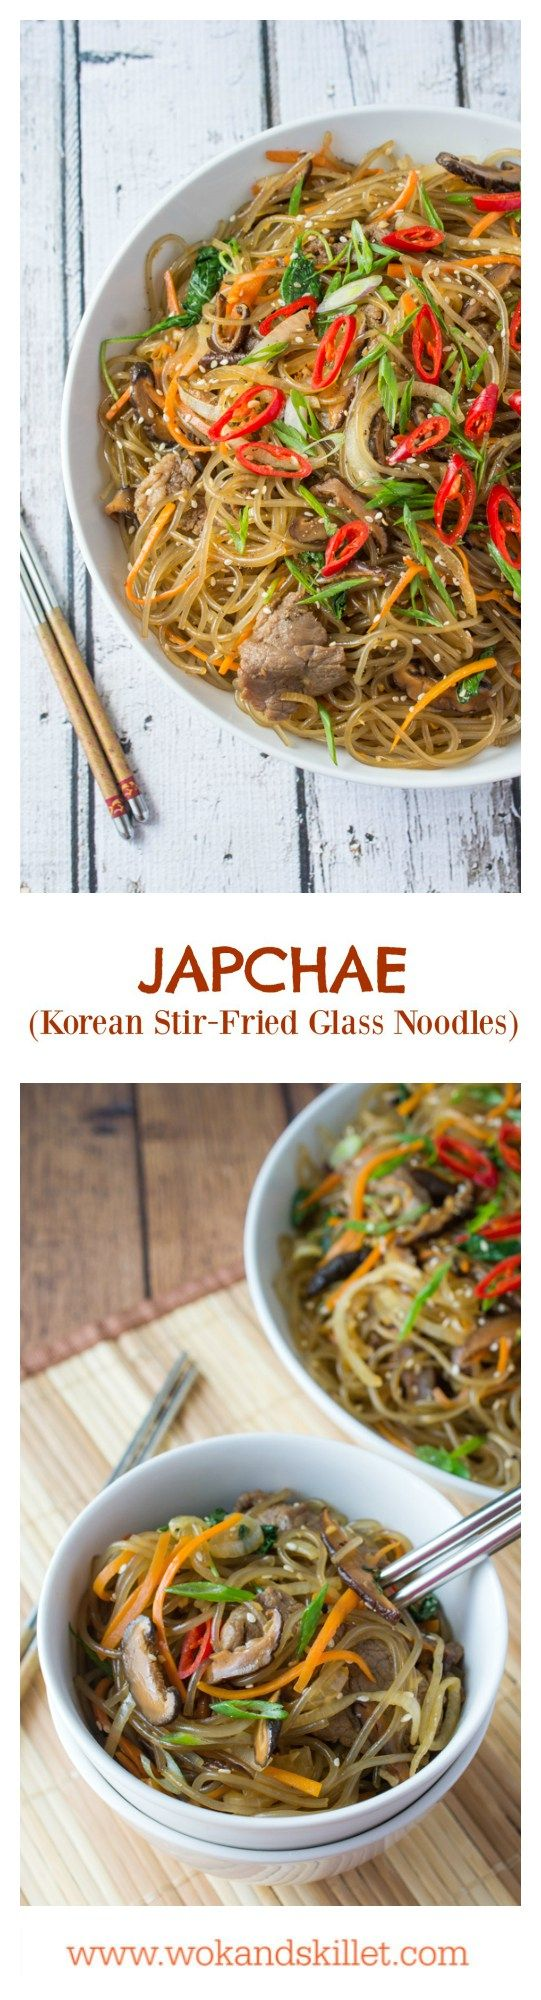 Japchae is a classic Korean dish that can be served as a side, main dish, or over rice. Stir-fried glass noodles with sliced beef, julienned carrots, vegetables and mushrooms, tossed in a sweet soy sauce dressing.